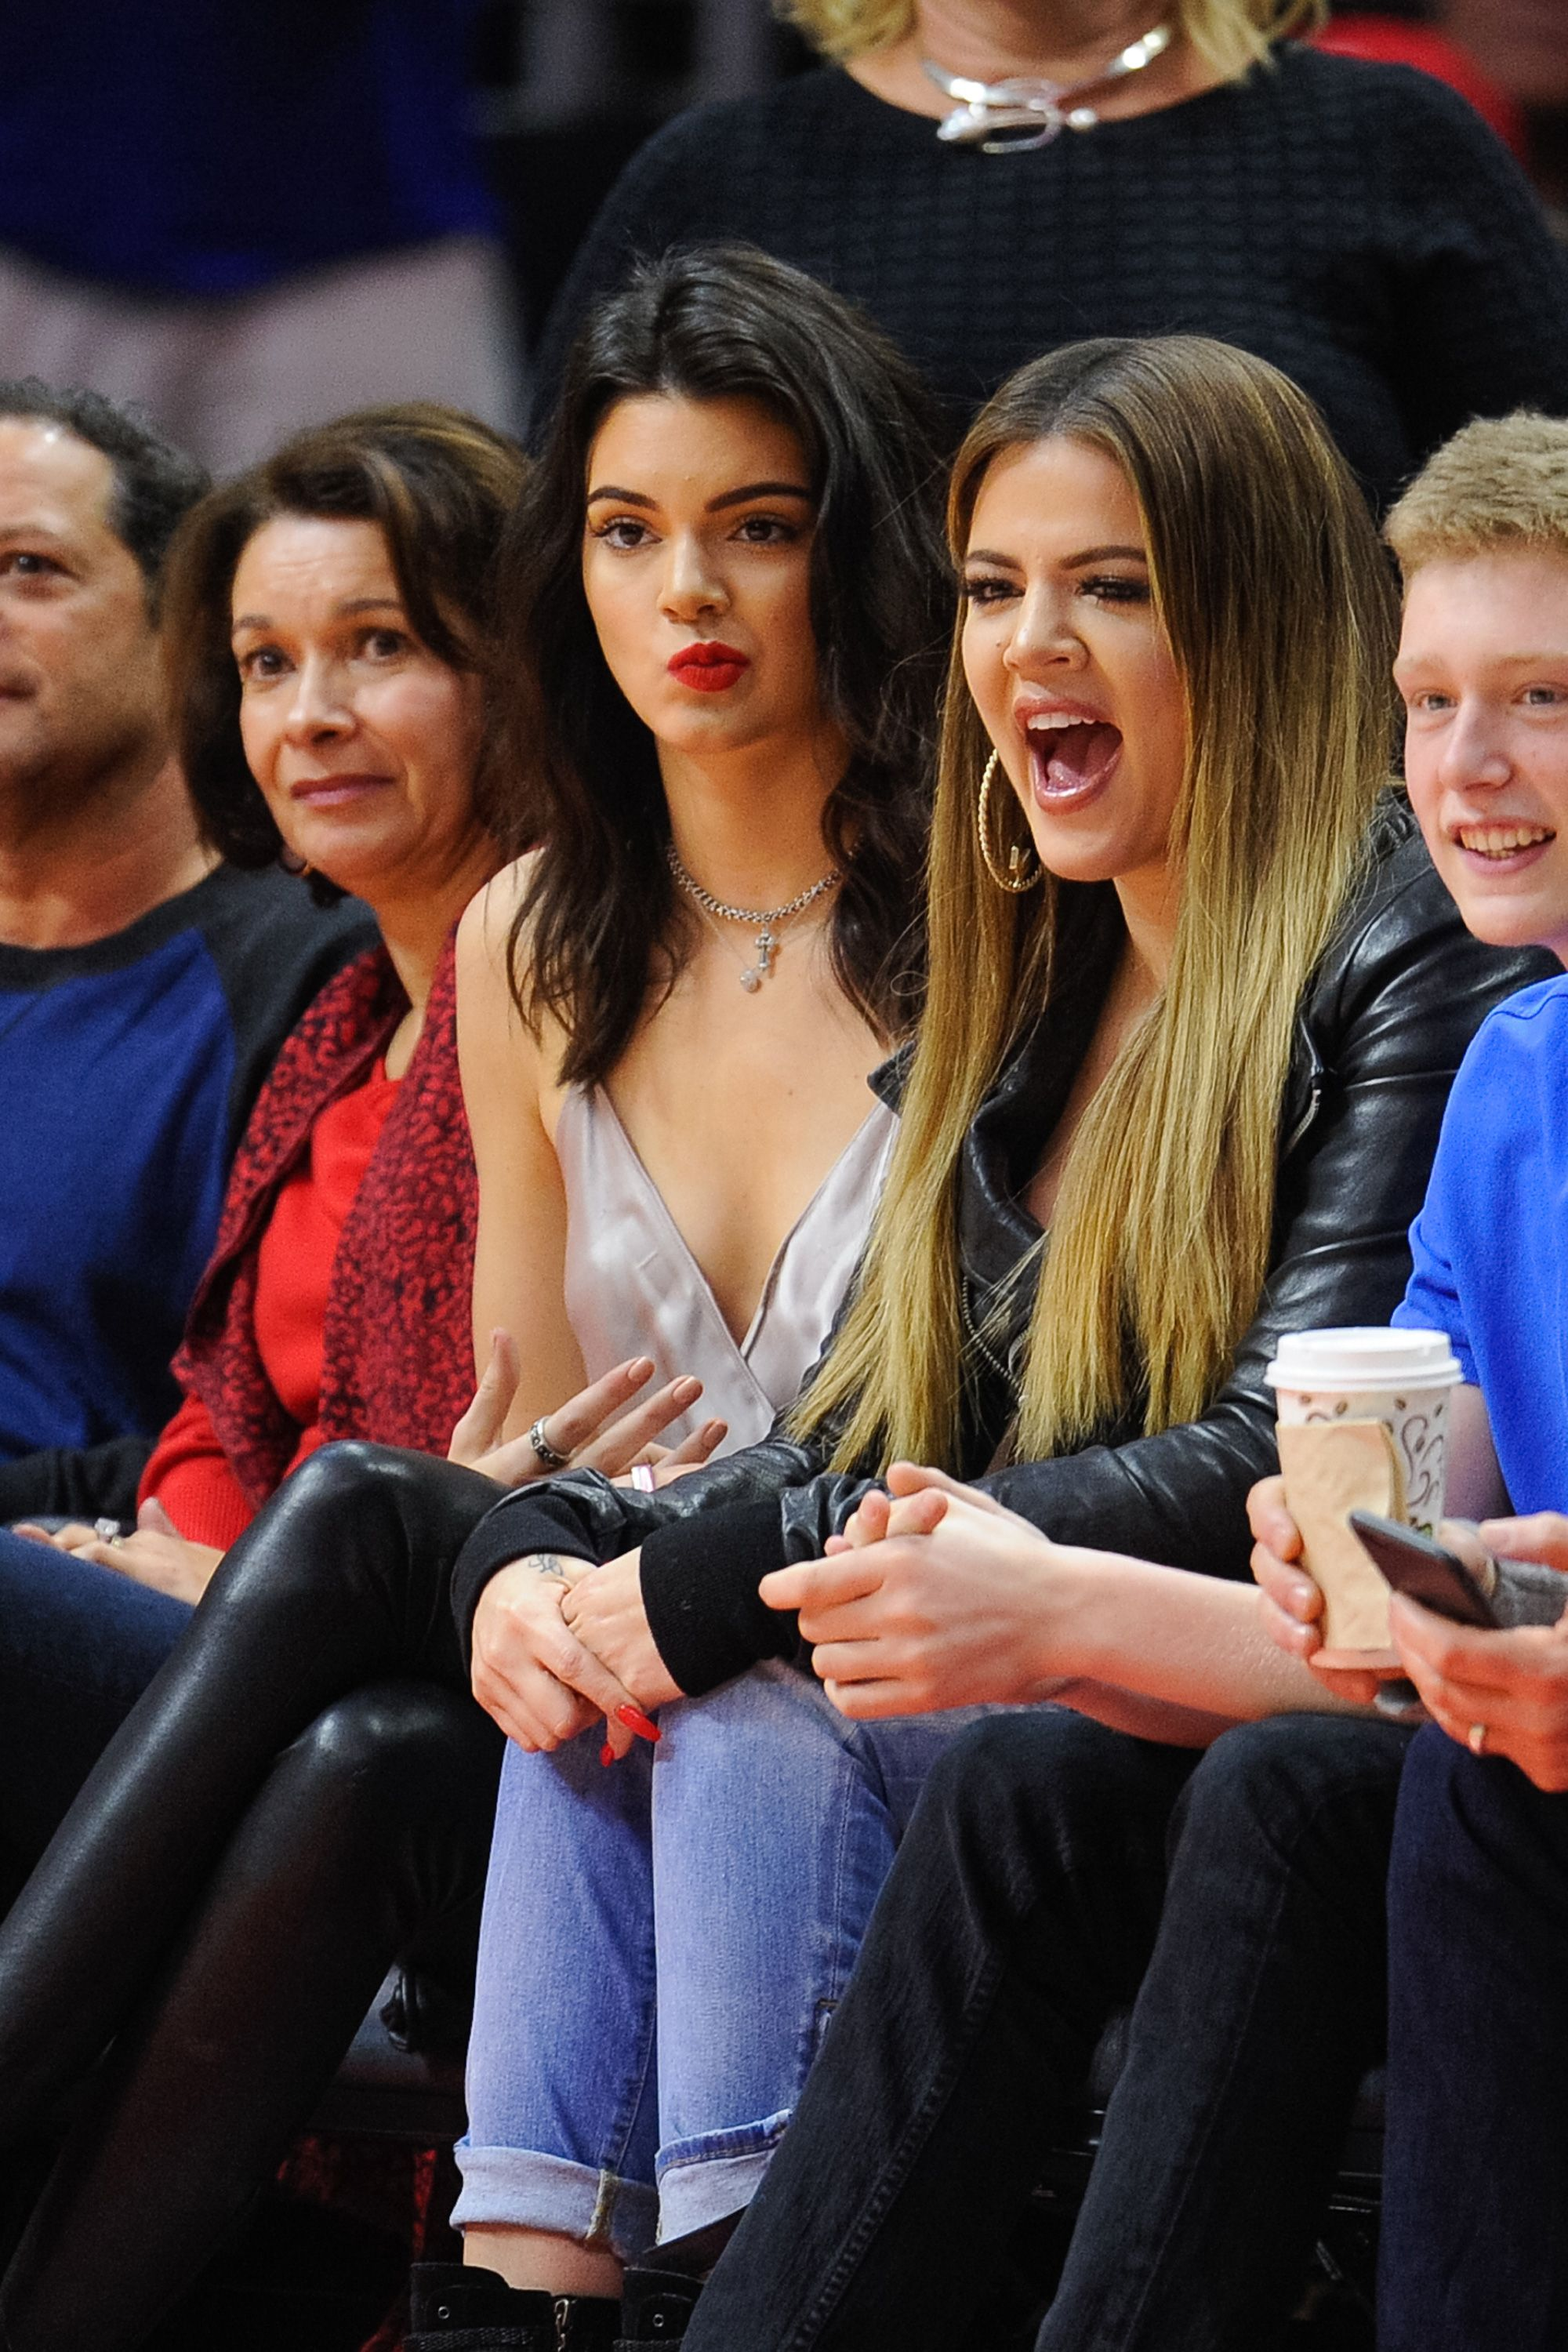 Kendall Jenner (L) and Khloe Kardashian attend a basketball game between Dallas Mavericks and the Los Angeles Clippers at Staples Center on January 10, 2015 in Los Angeles, California.